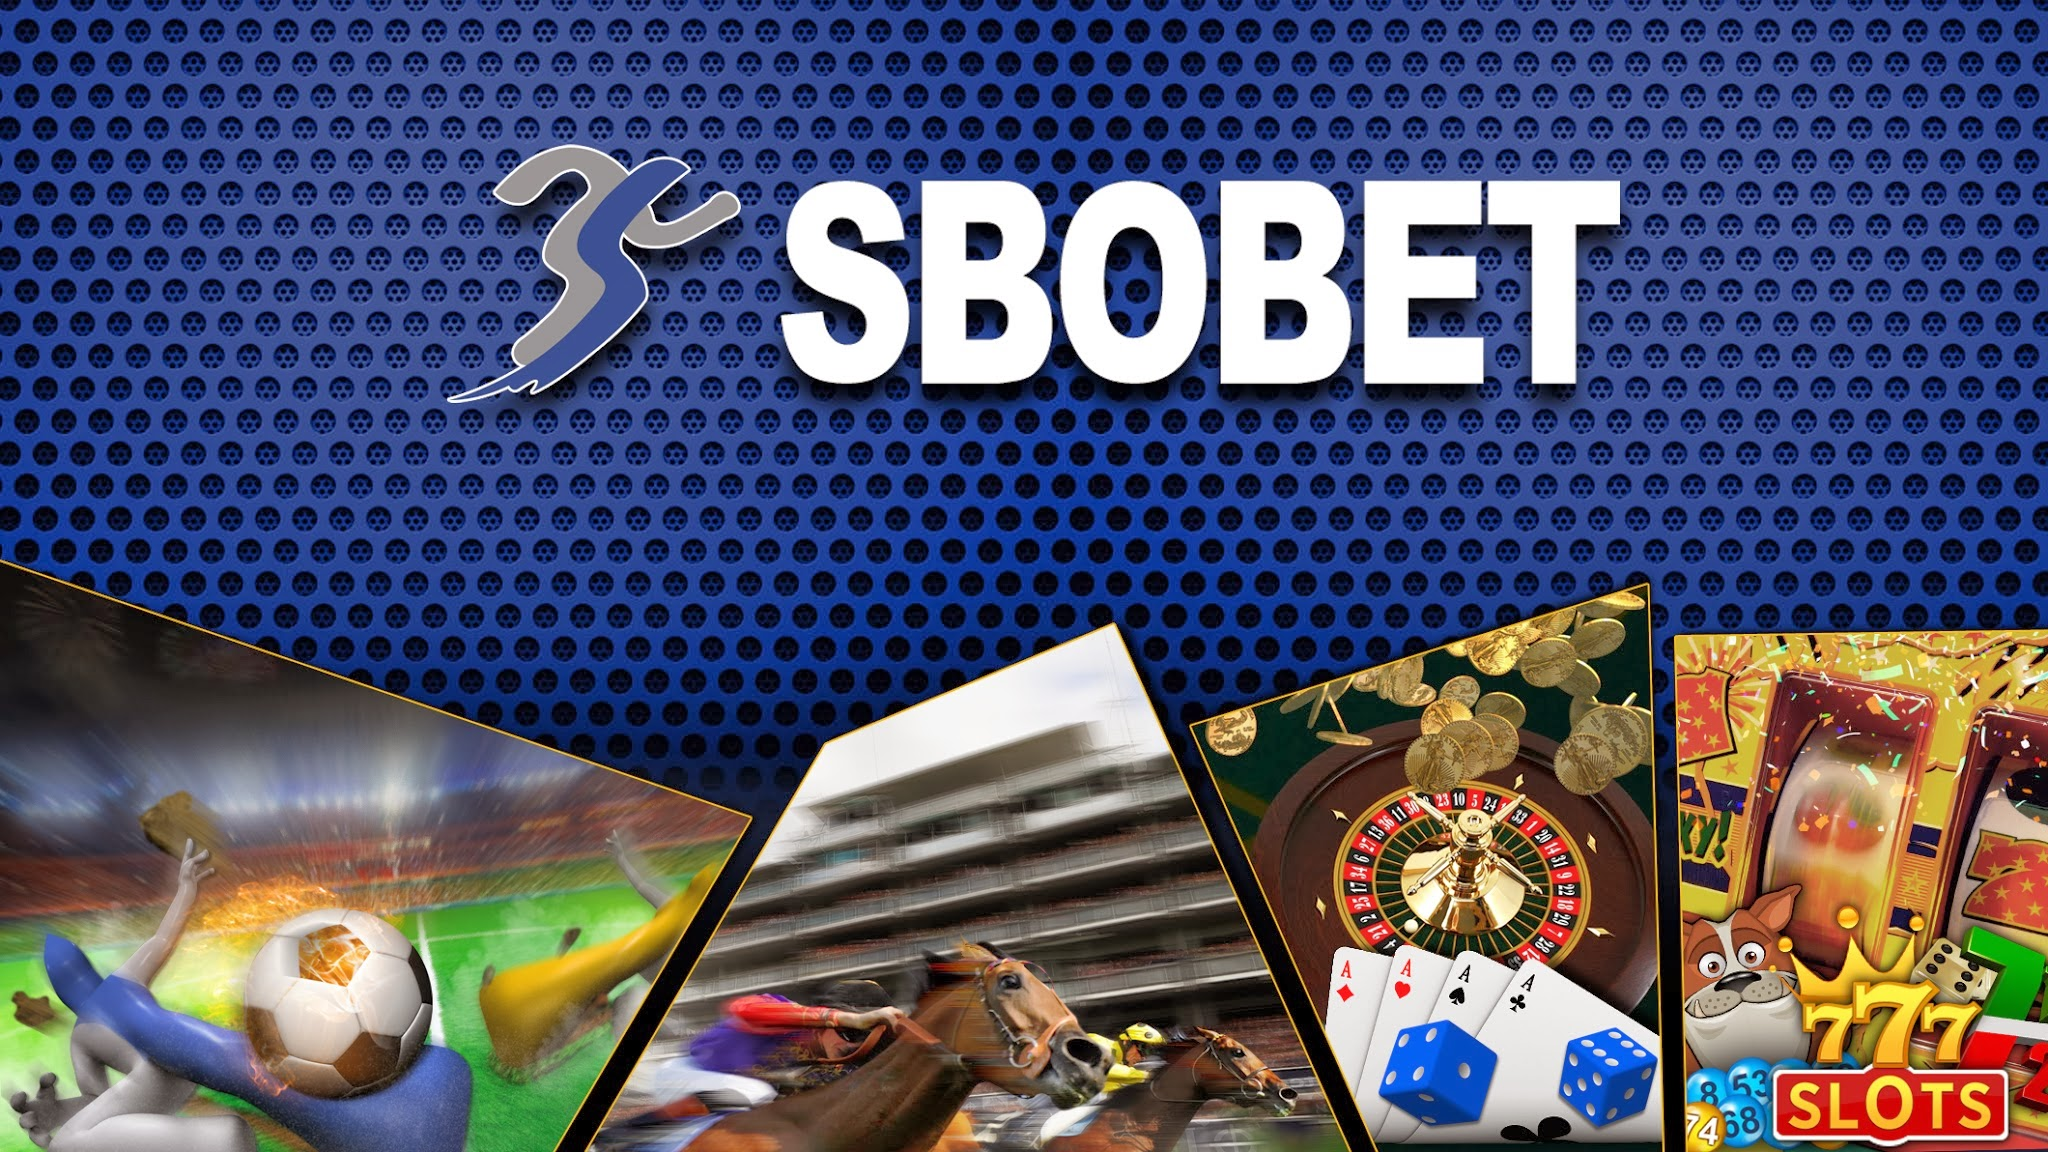 Take pleasure in Online Sports betting throughout championships